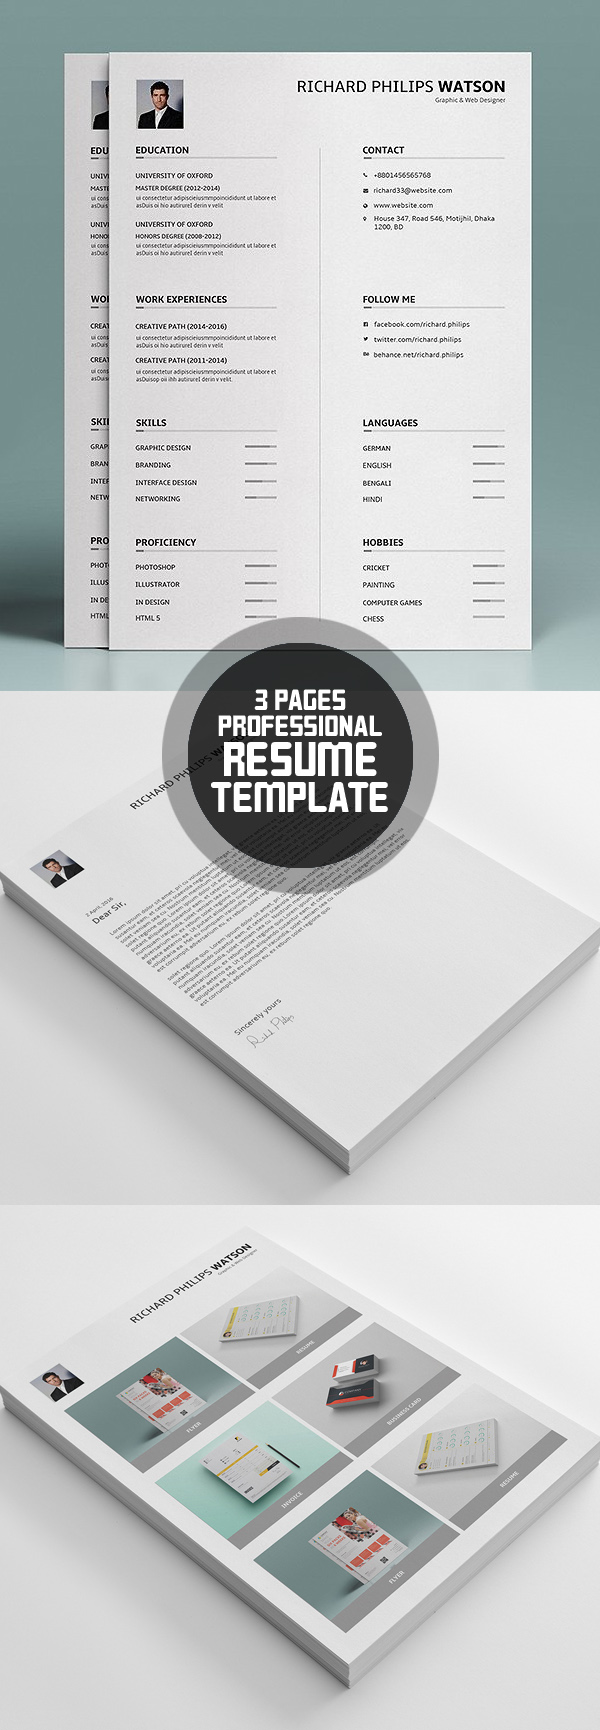 50 Best Resume Templates For 2018 - 24